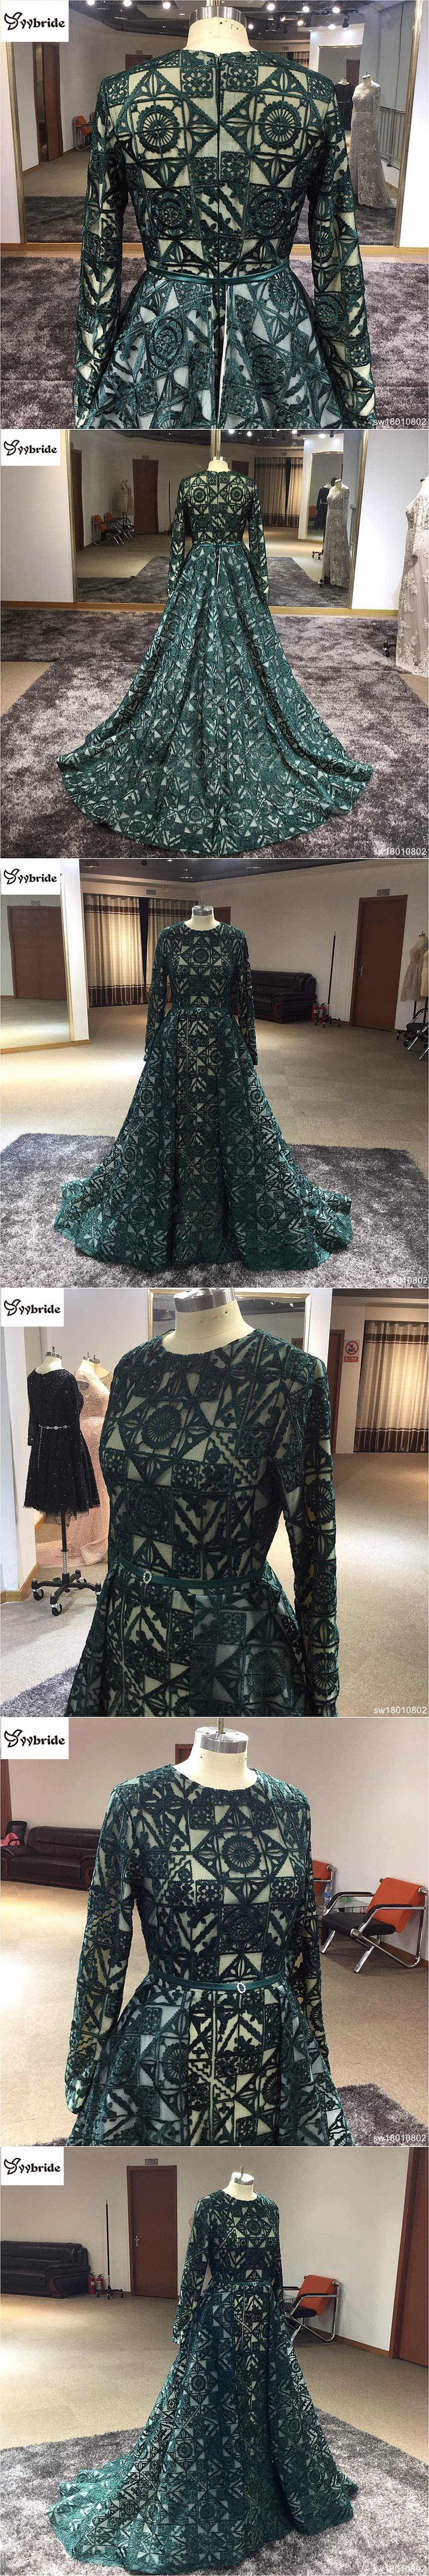 Real Sample Dubai Fashion Dark Green Long Evening Gowns Caftan Abaya In Dubai Long Sleeve Arabic Dress Muslim Evening Dress